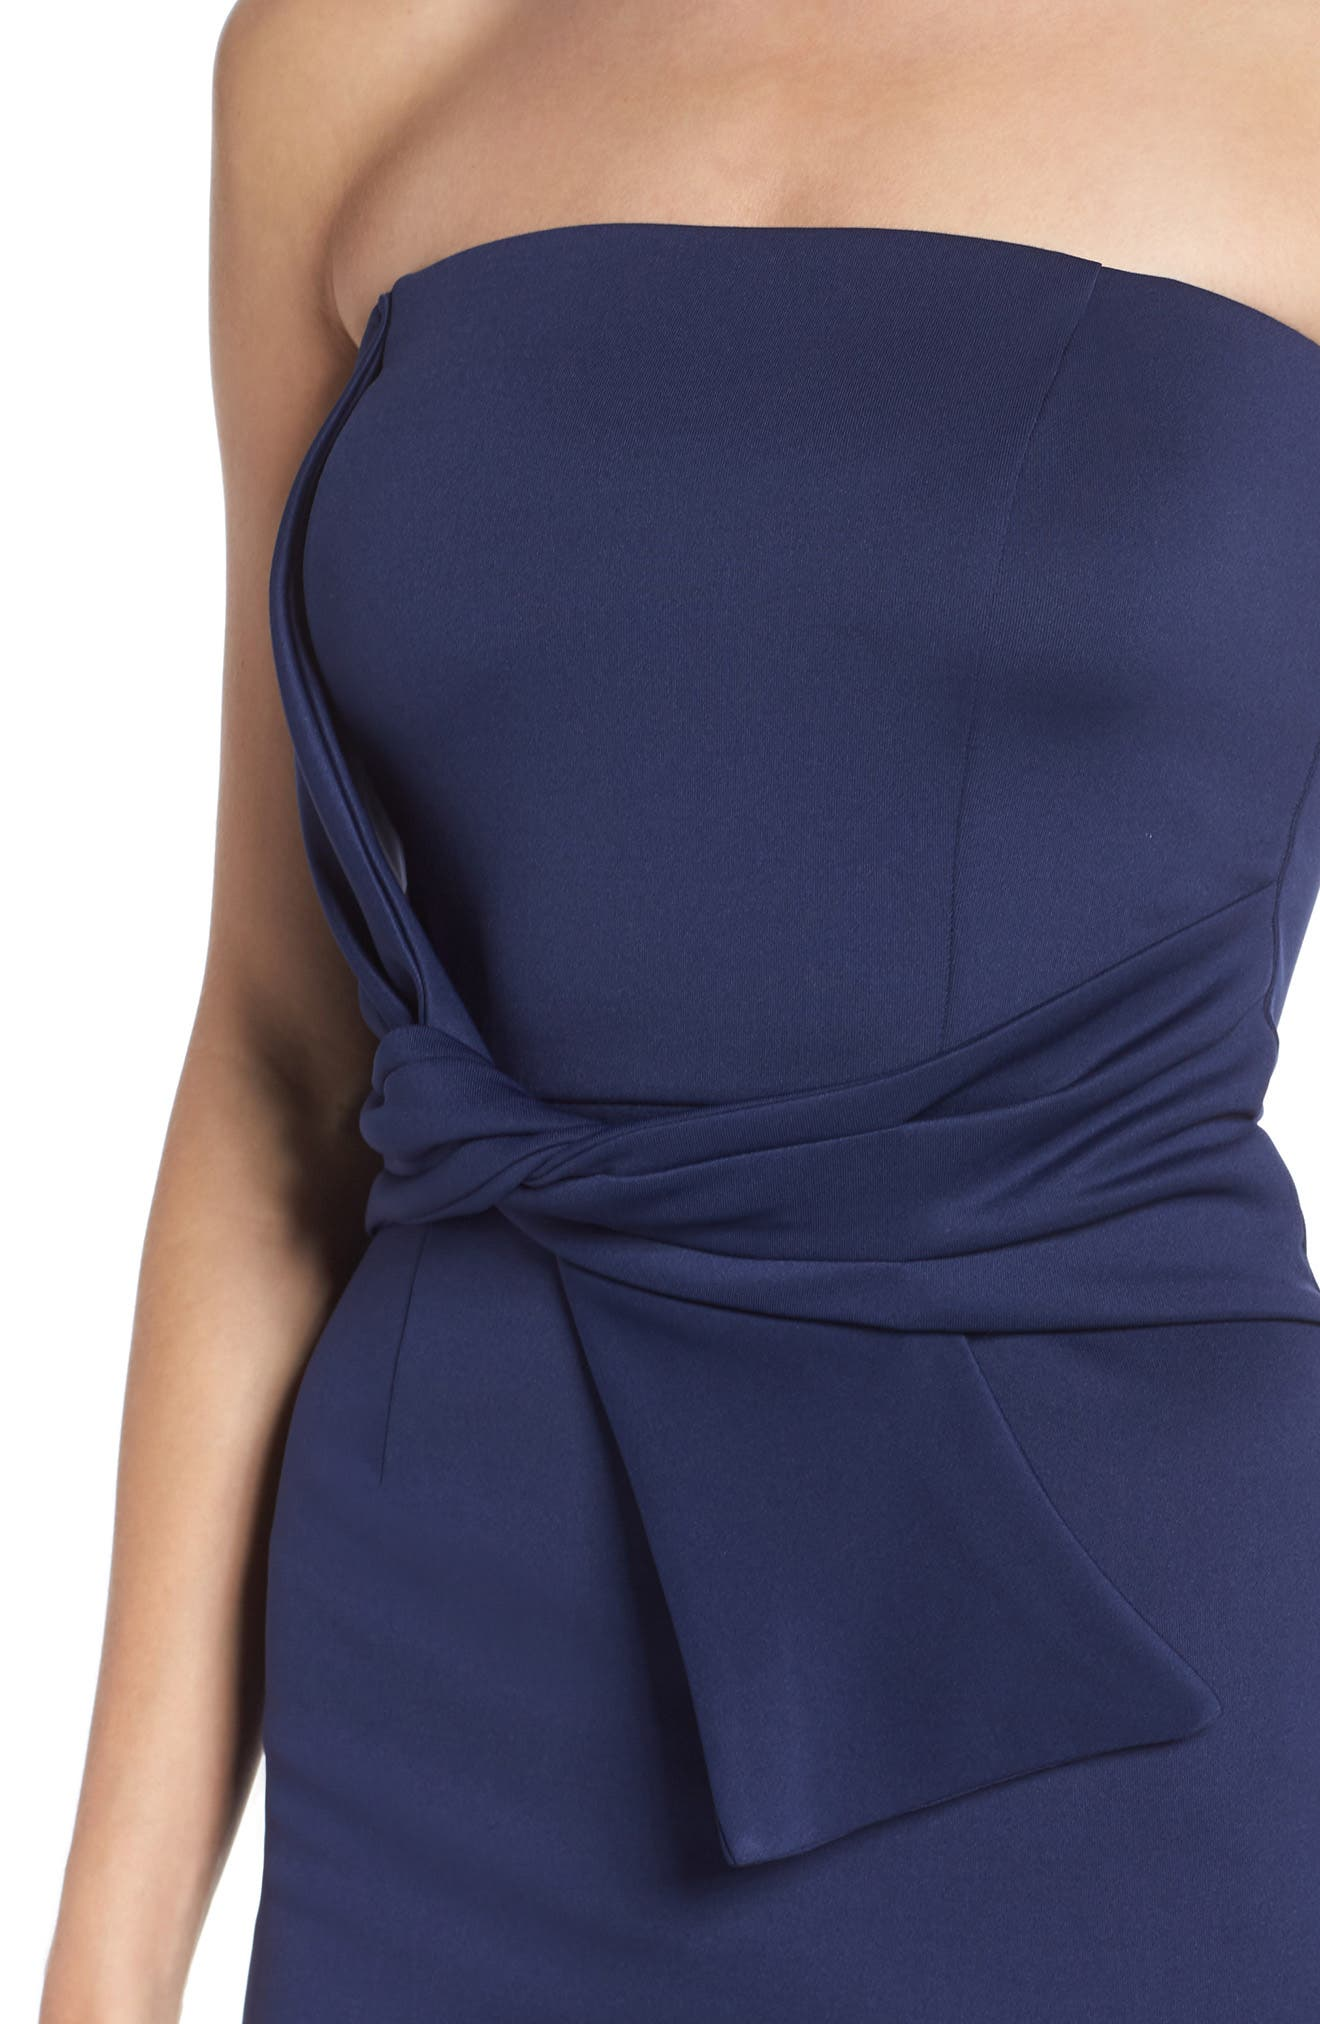 Strapless Tie Front Sheath Dress,                             Alternate thumbnail 4, color,                             401